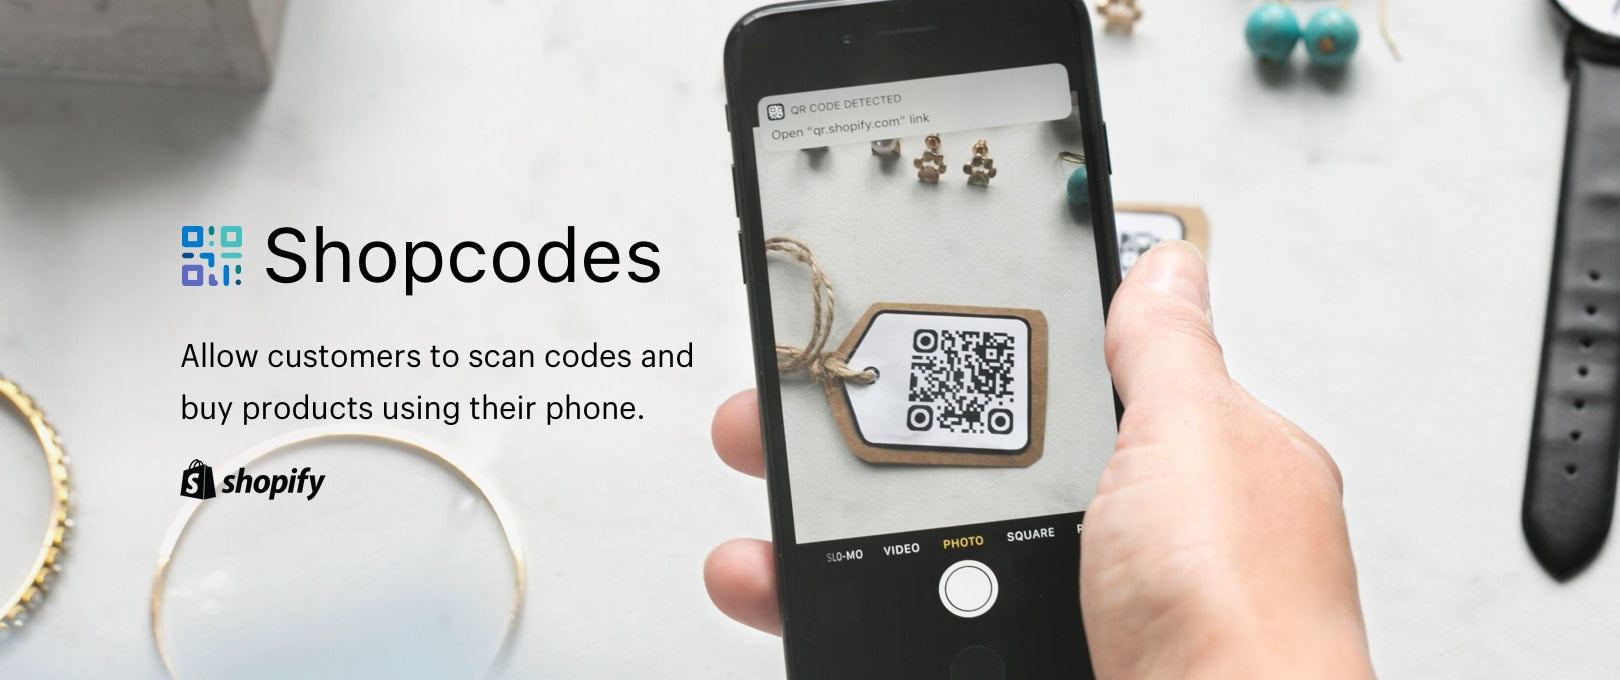 Introducing Shopcodes: QR Codes That Make Mobile Shopping a